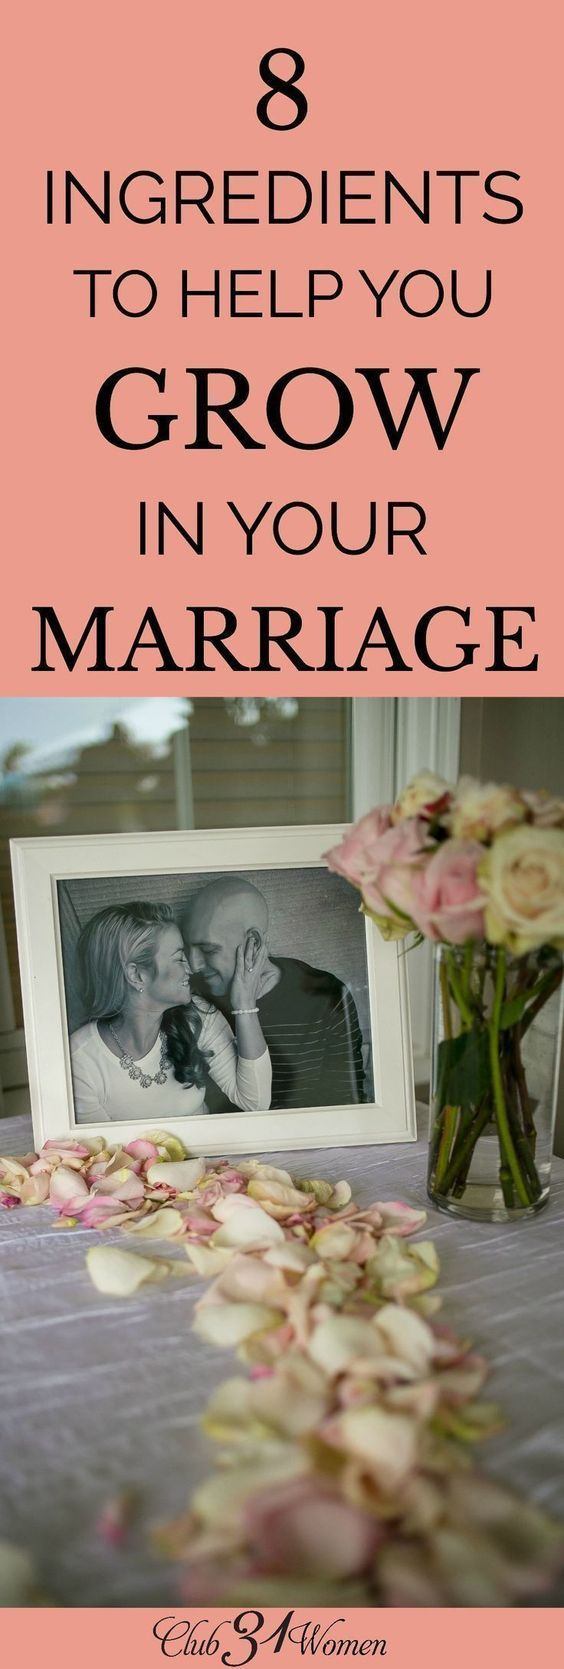 What does it take to make your marriage grow? There are some key ingredients